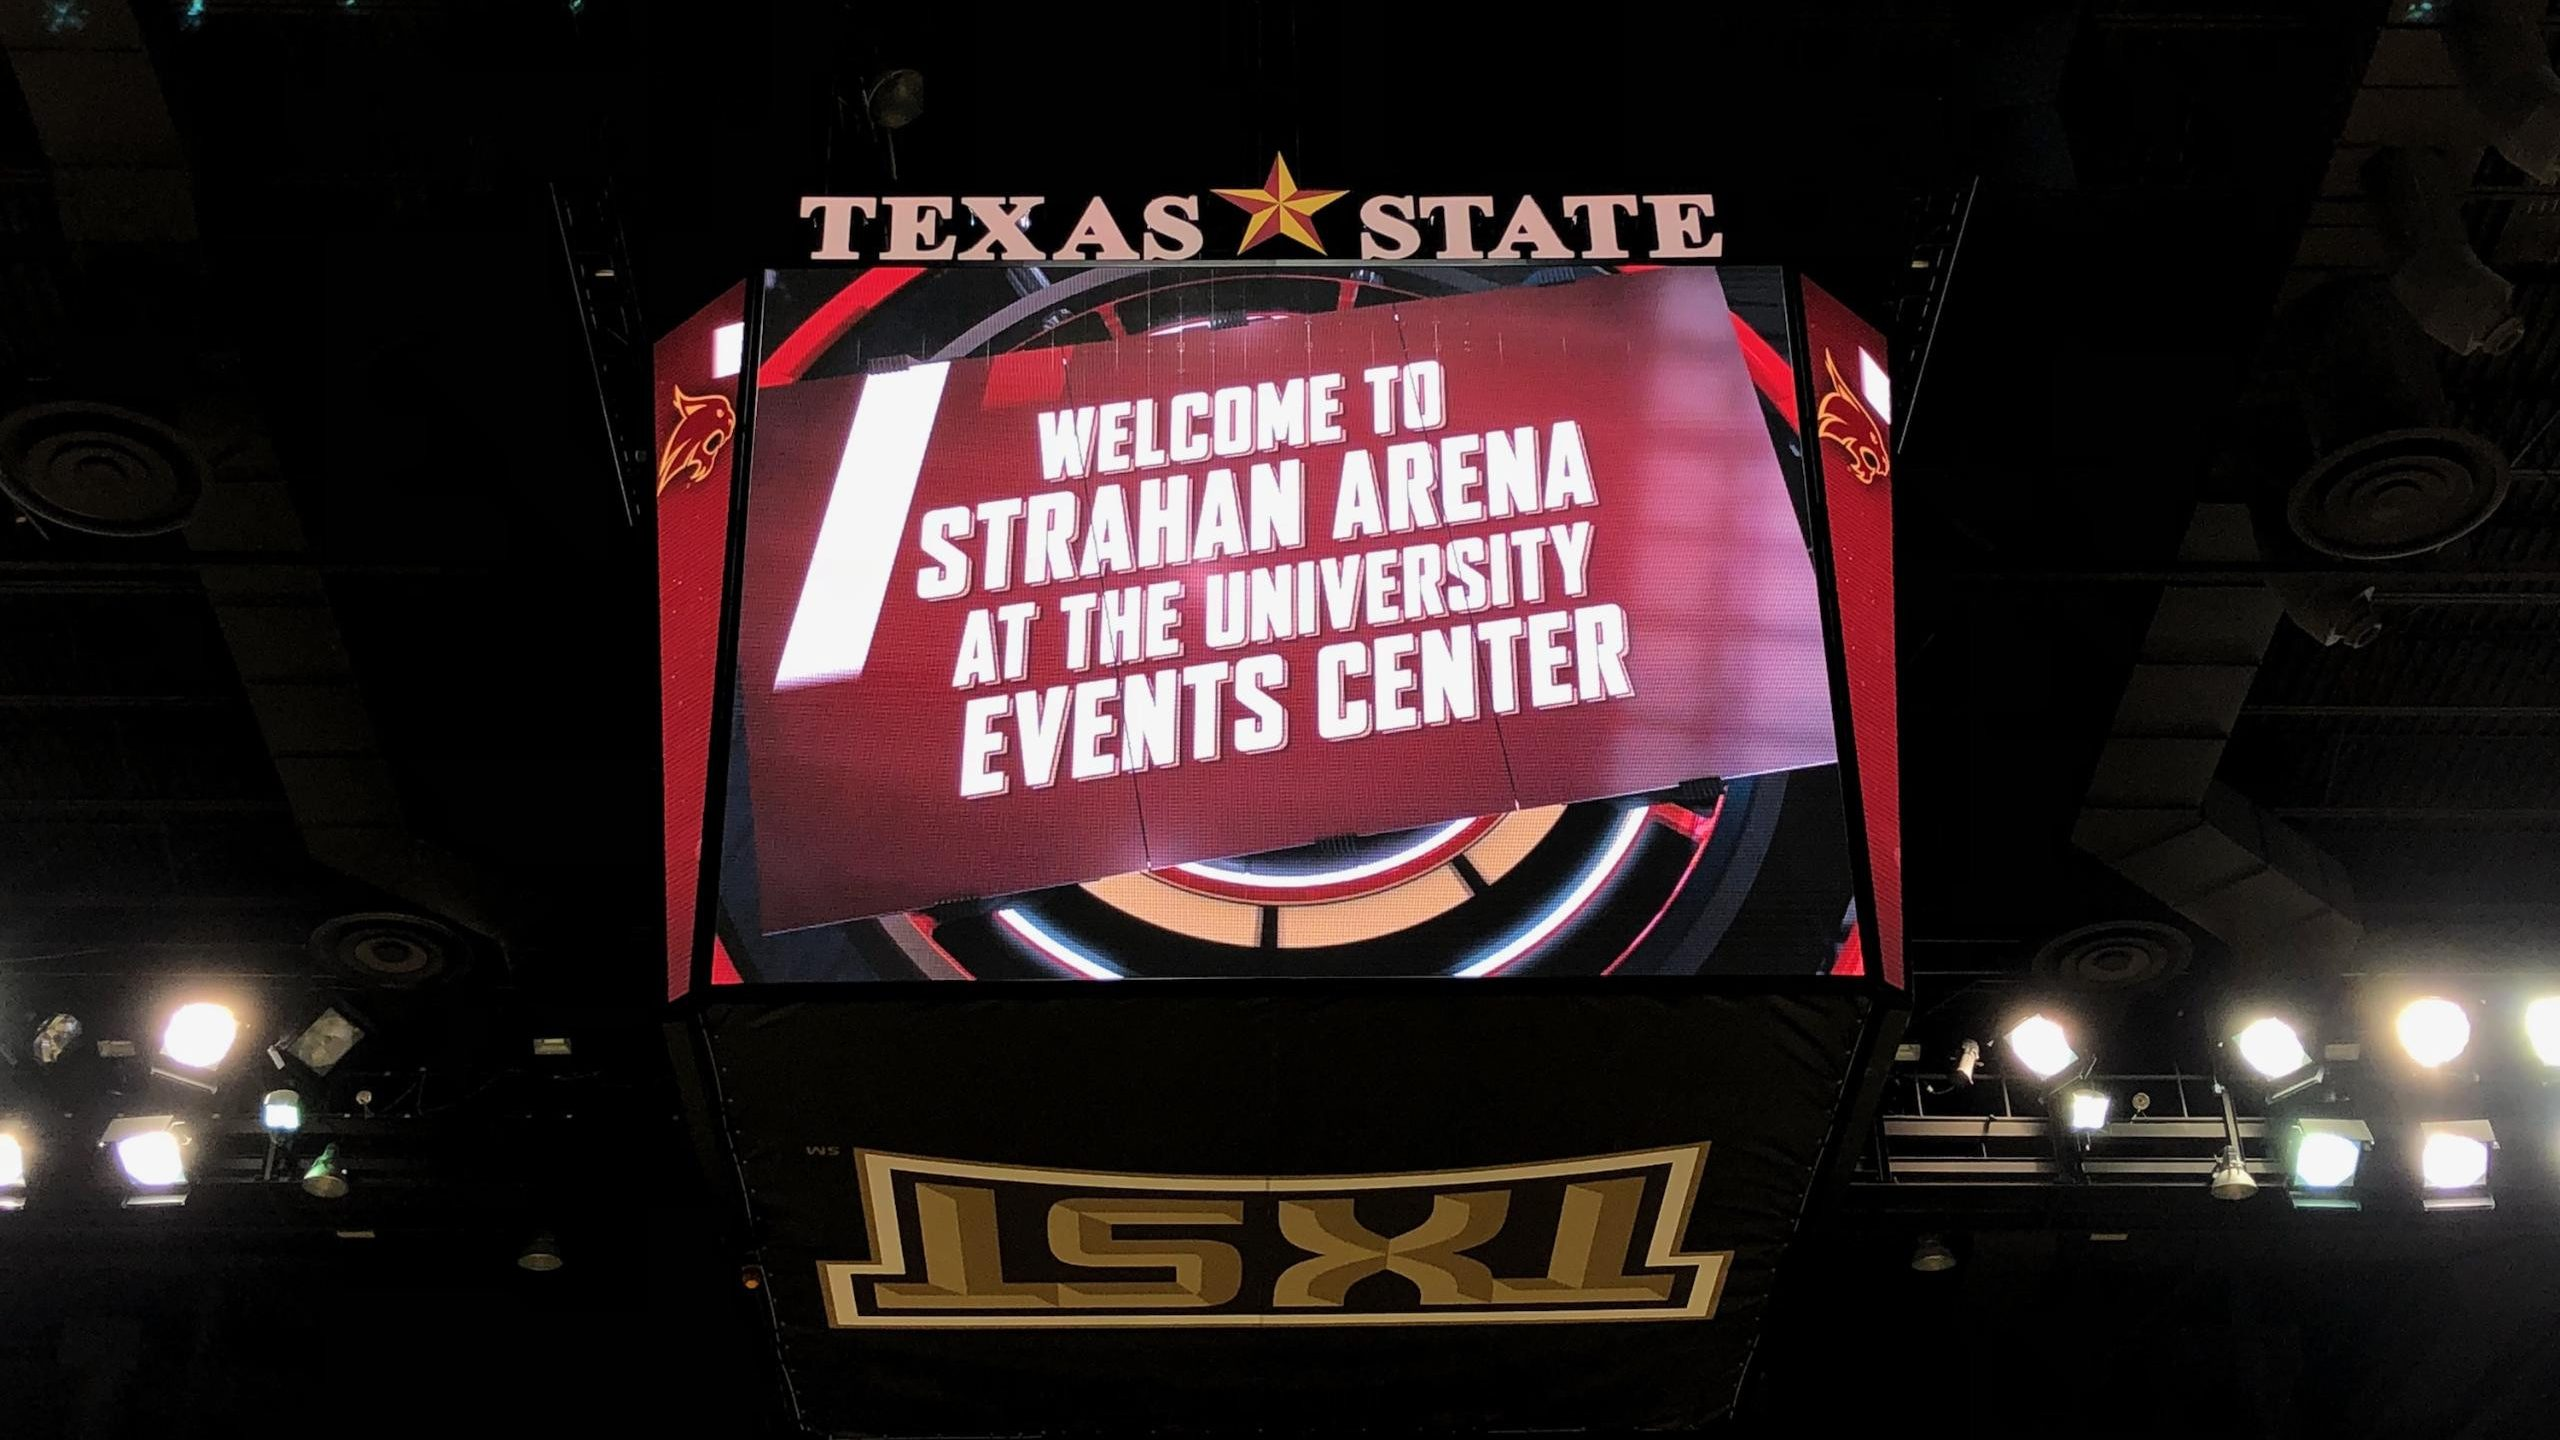 University Events Center at Texas State University.